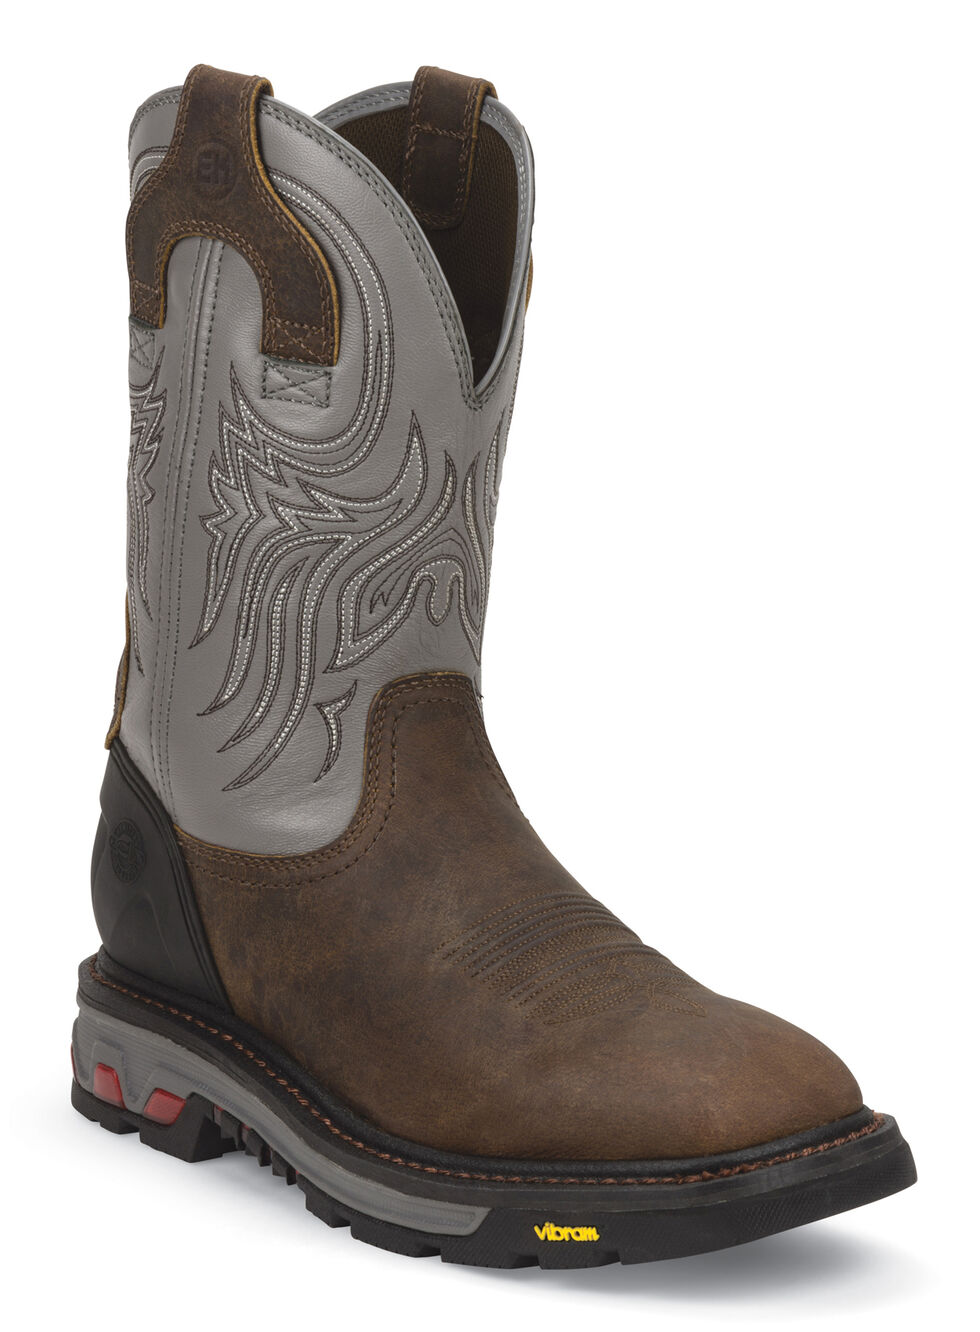 Justin Men's Tanker Silver Electrical Hazard Work Boots  , Timber, hi-res